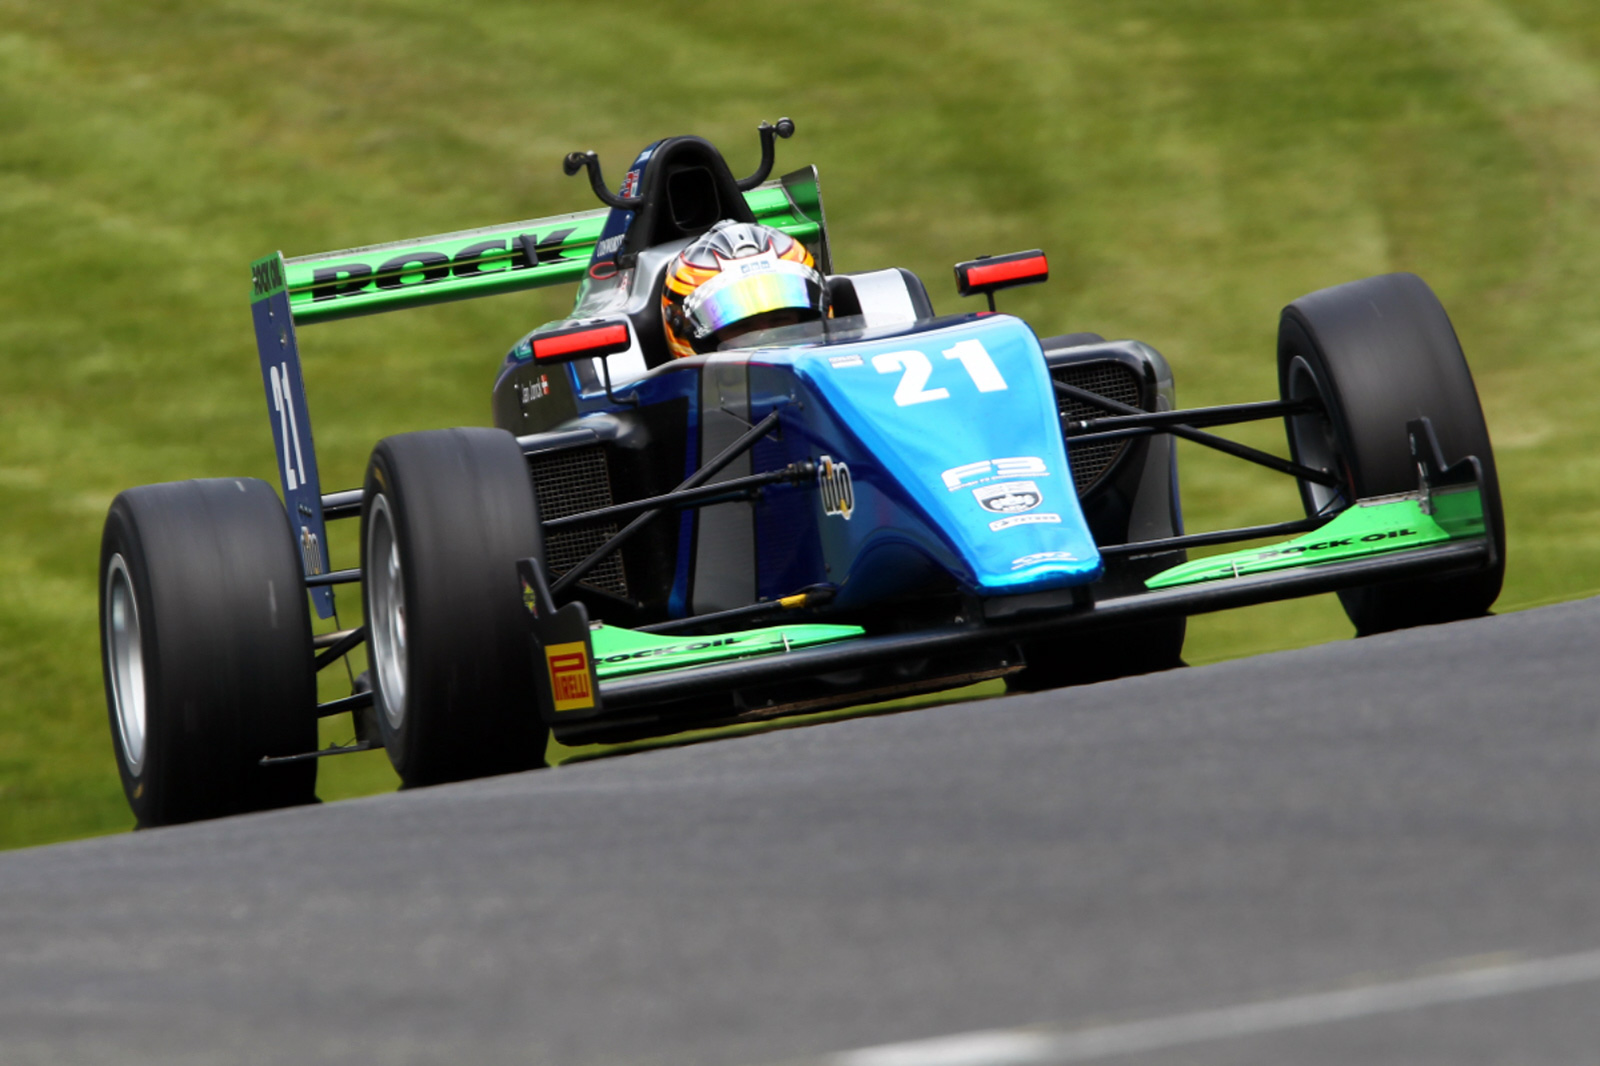 an Jonck produced a series of highlight performances at Oulton Park.